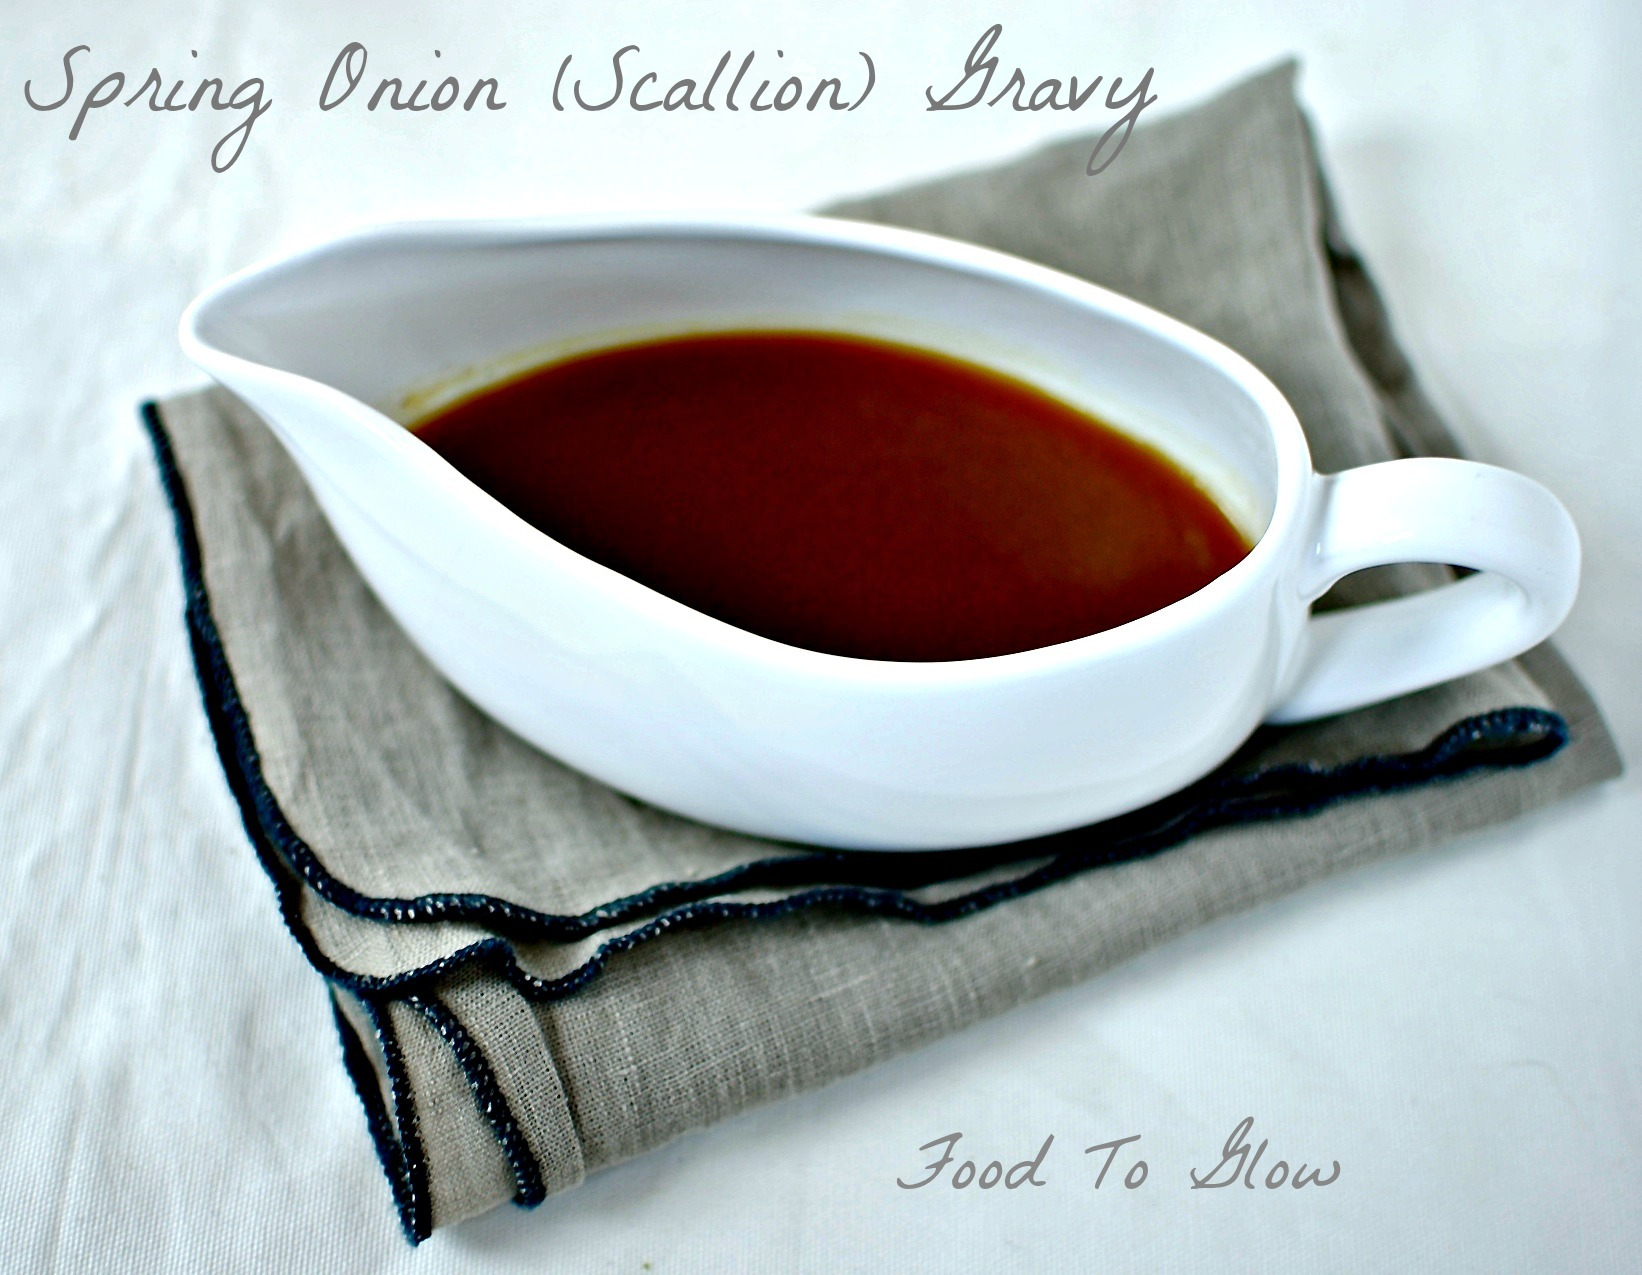 Rich Spring Onion {Scallion} Gravy + 10 Ways To Use It